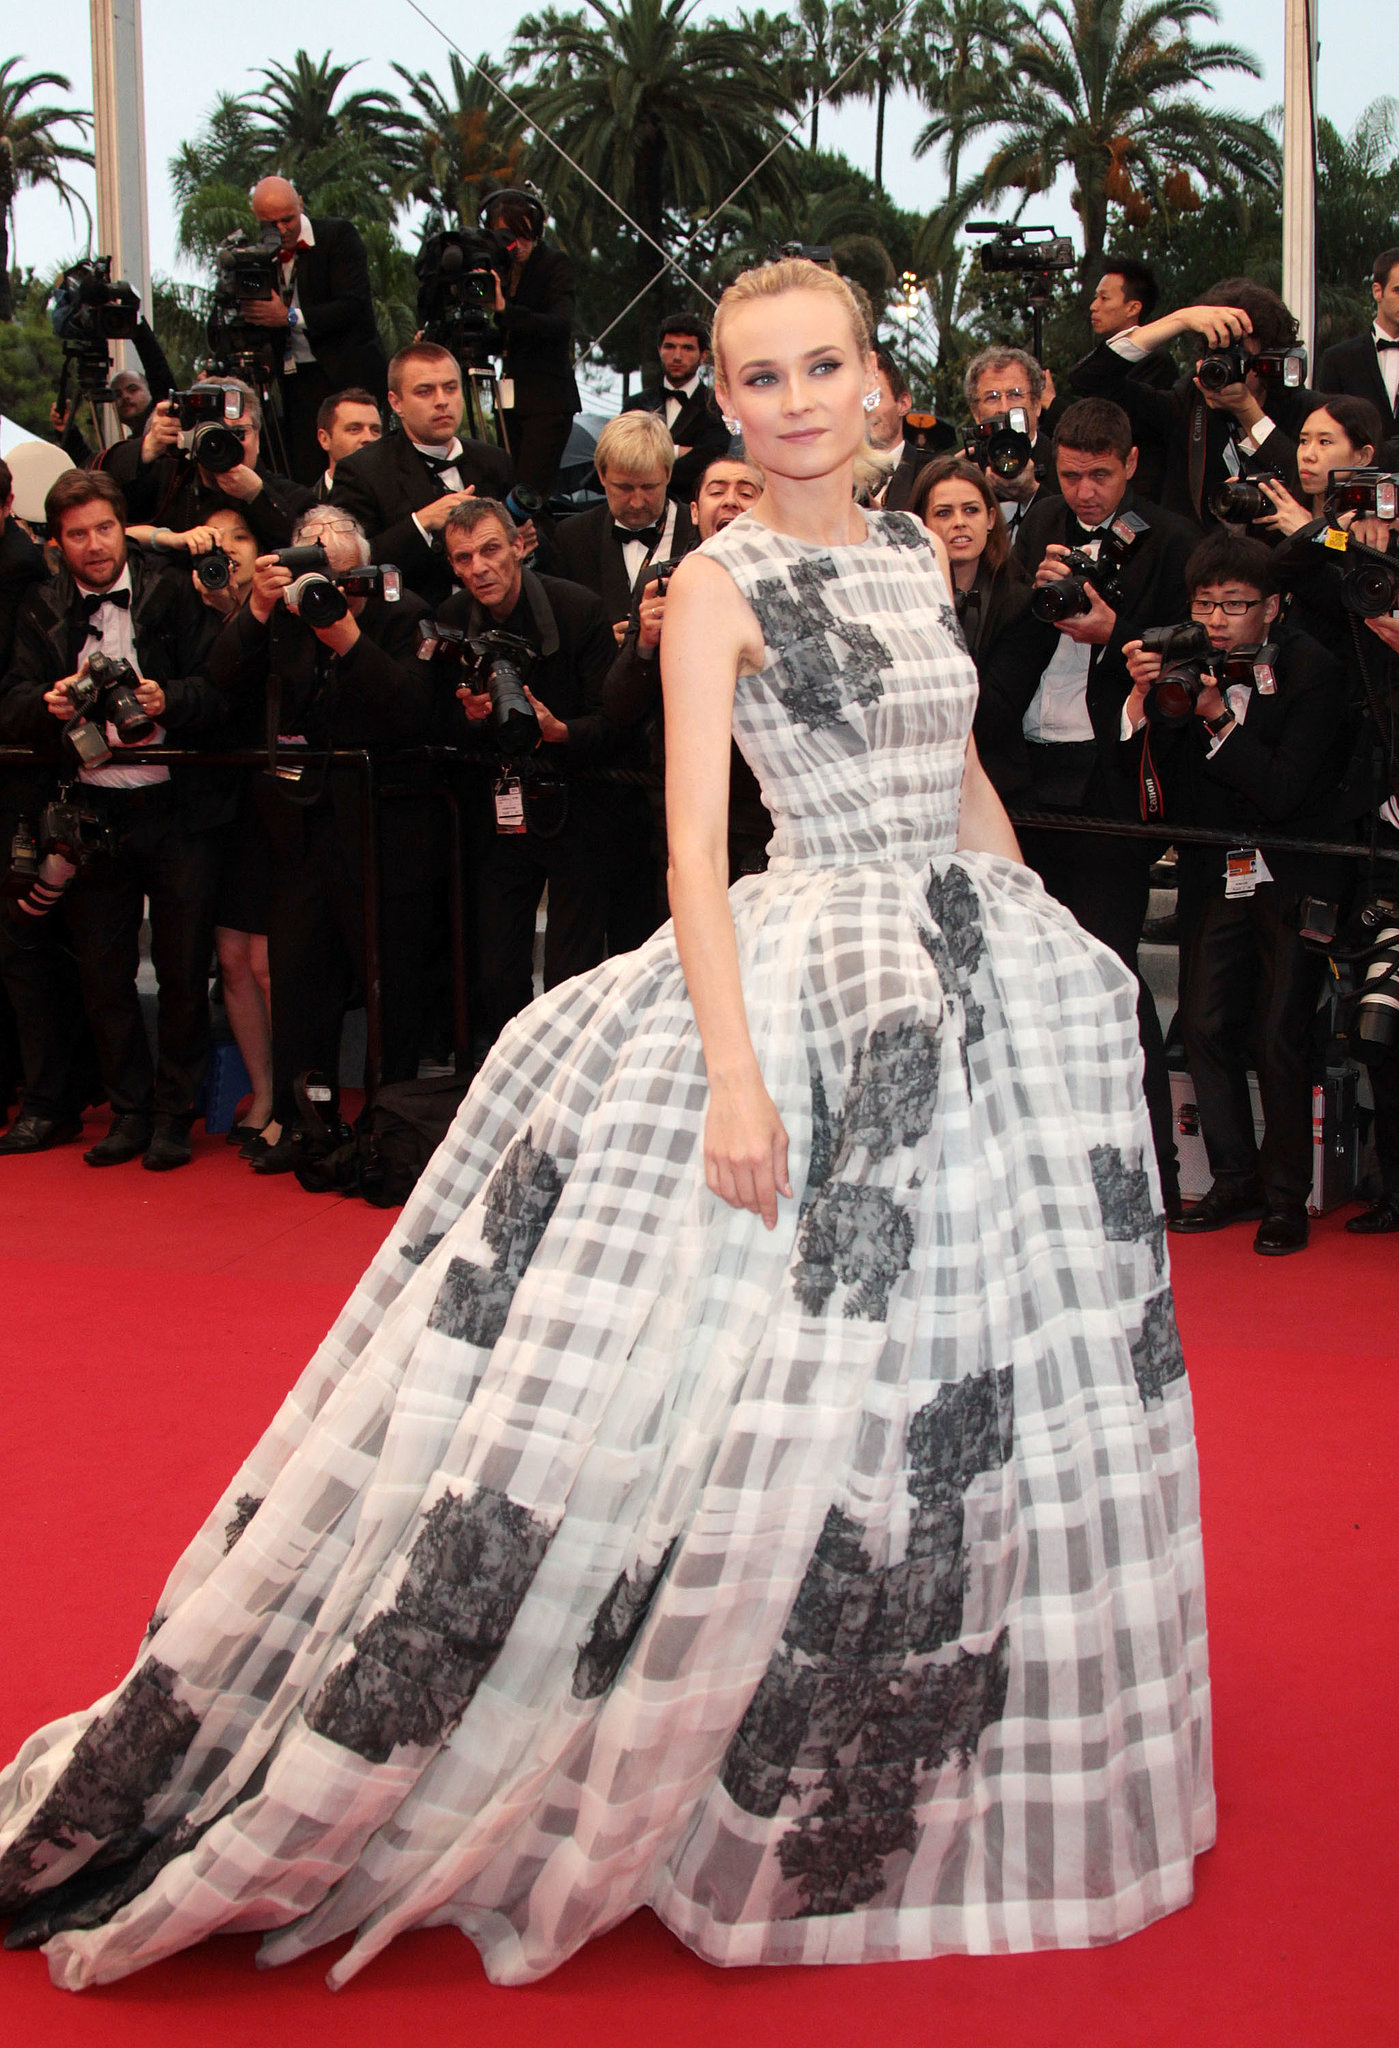 Diane Kruger wore a stunning gown to the Cannes Film Festival in 2012 closing ceremonies.